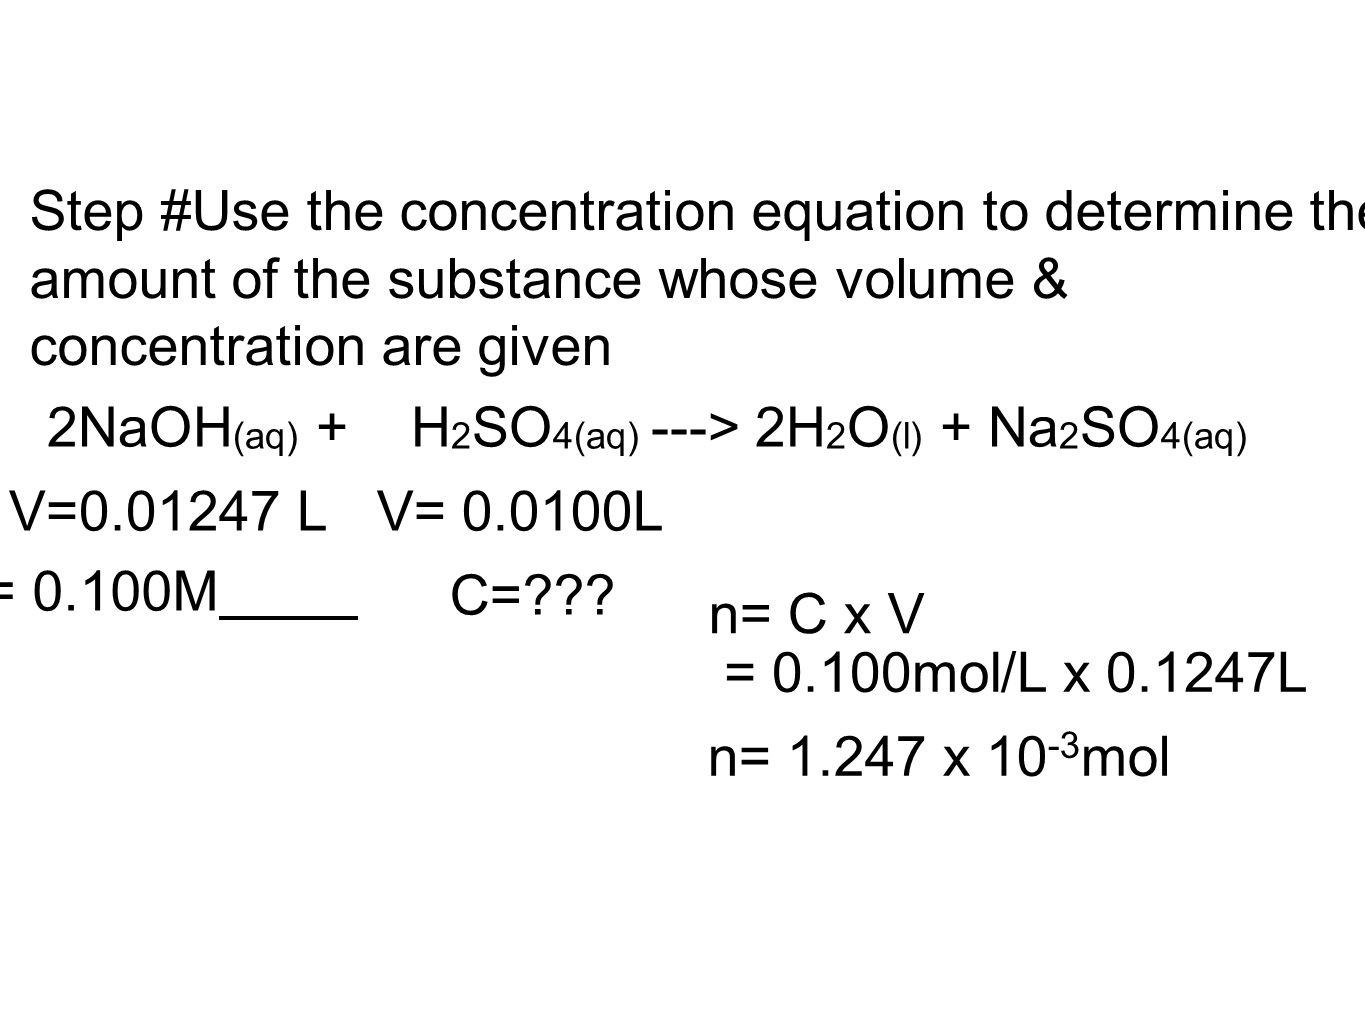 Step #Use the concentration equation to determine the amount of the substance whose volume & concentration are given